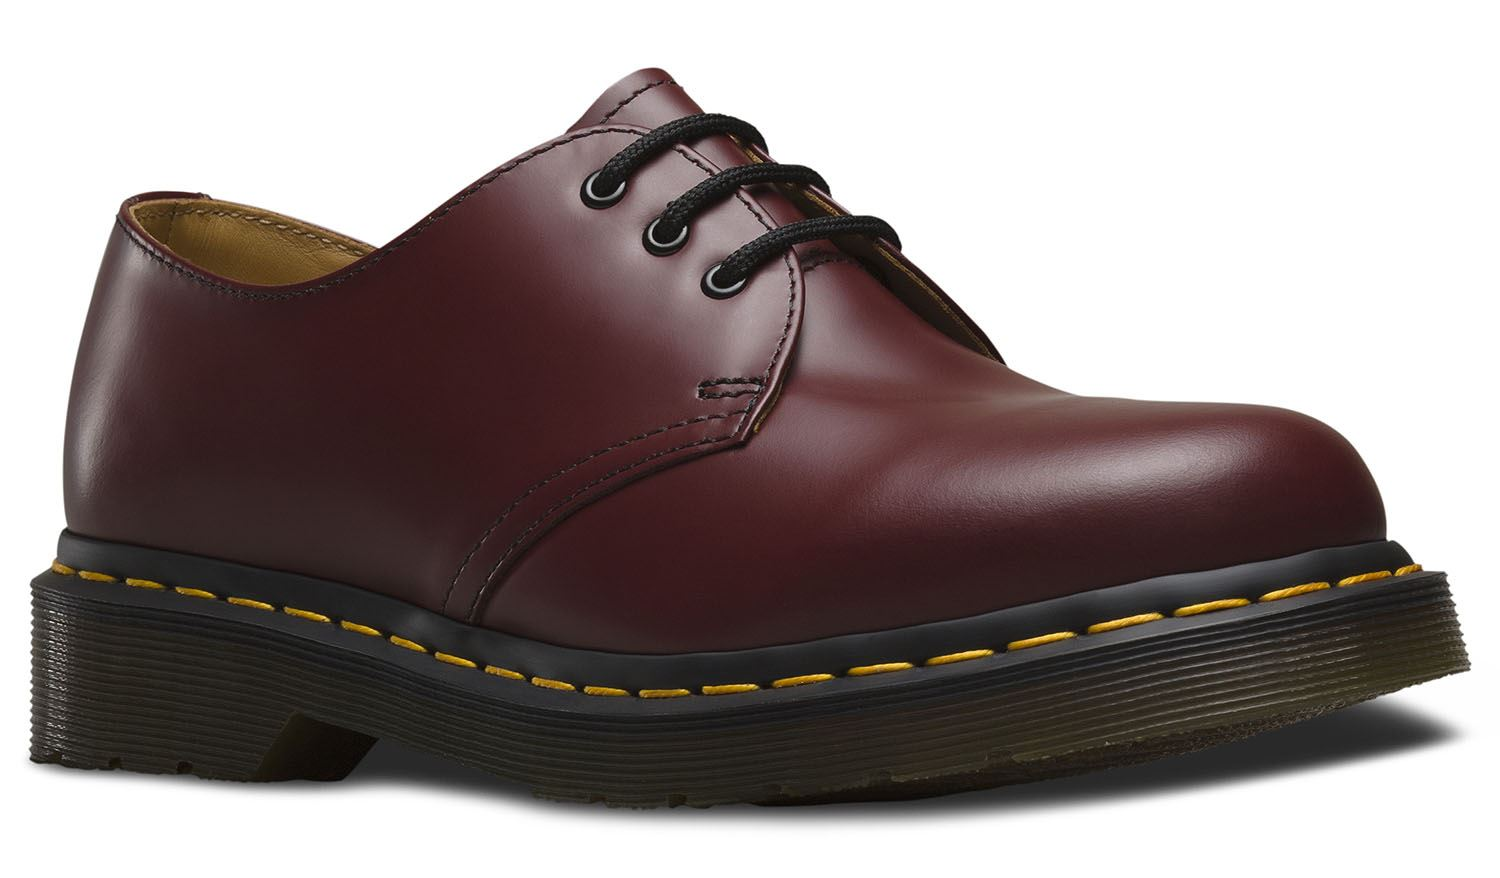 Dr Martens  Uomo 1461 59 Classic Cherry Smooth ROT + Yellow Welt Smooth Cherry Leder Schuhes d4a6cf